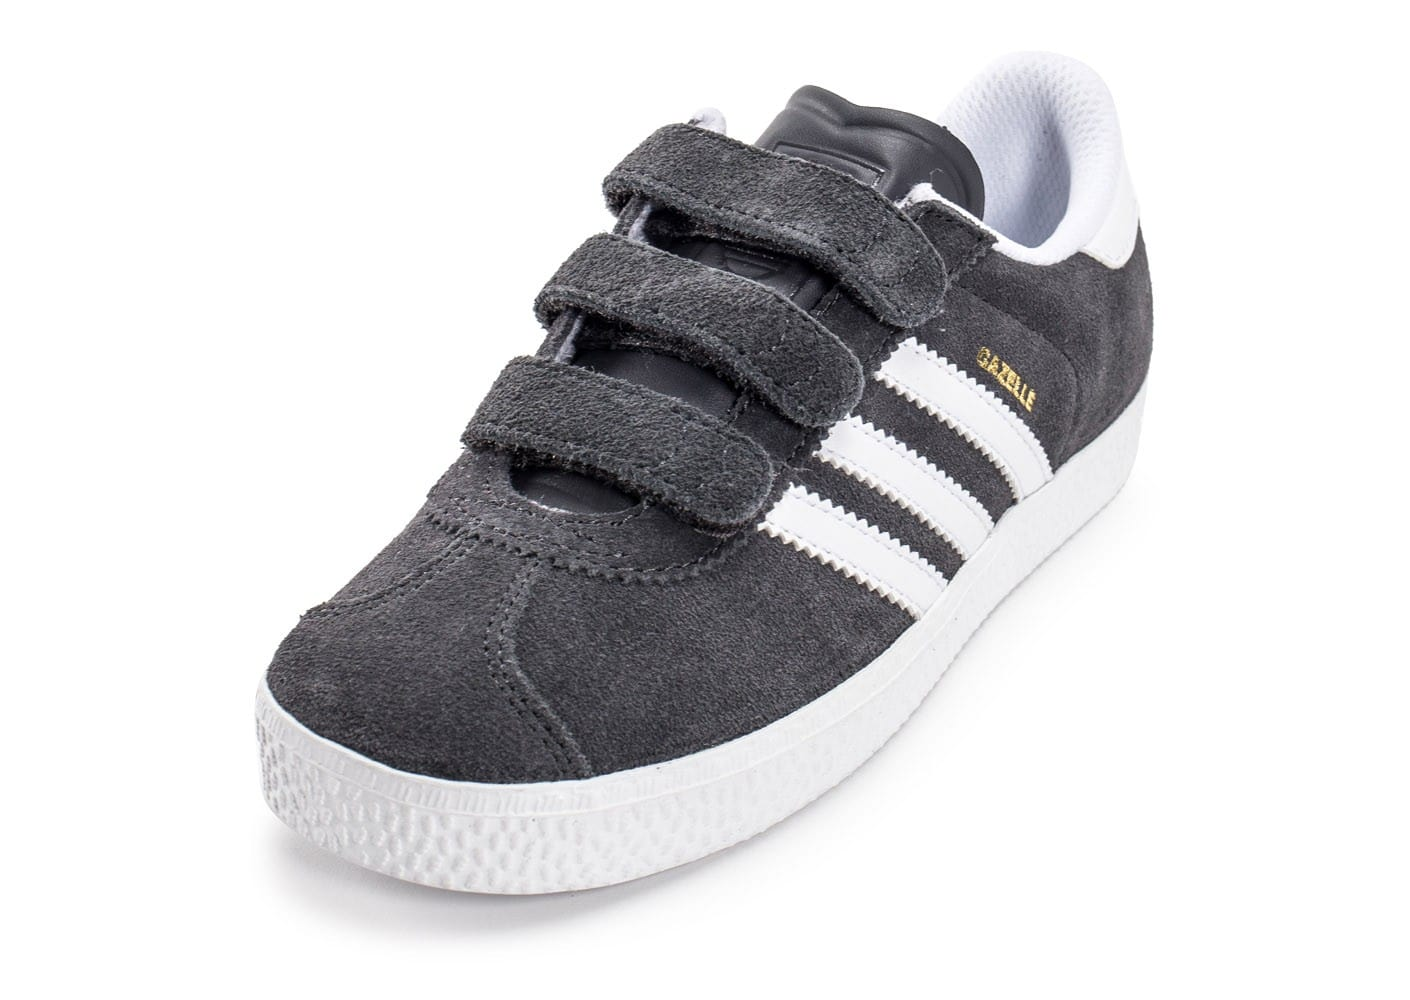 adidas gazelle enfant chaussure enfant adidas tennis baskets gazelle 2cfc bleu marine. Black Bedroom Furniture Sets. Home Design Ideas